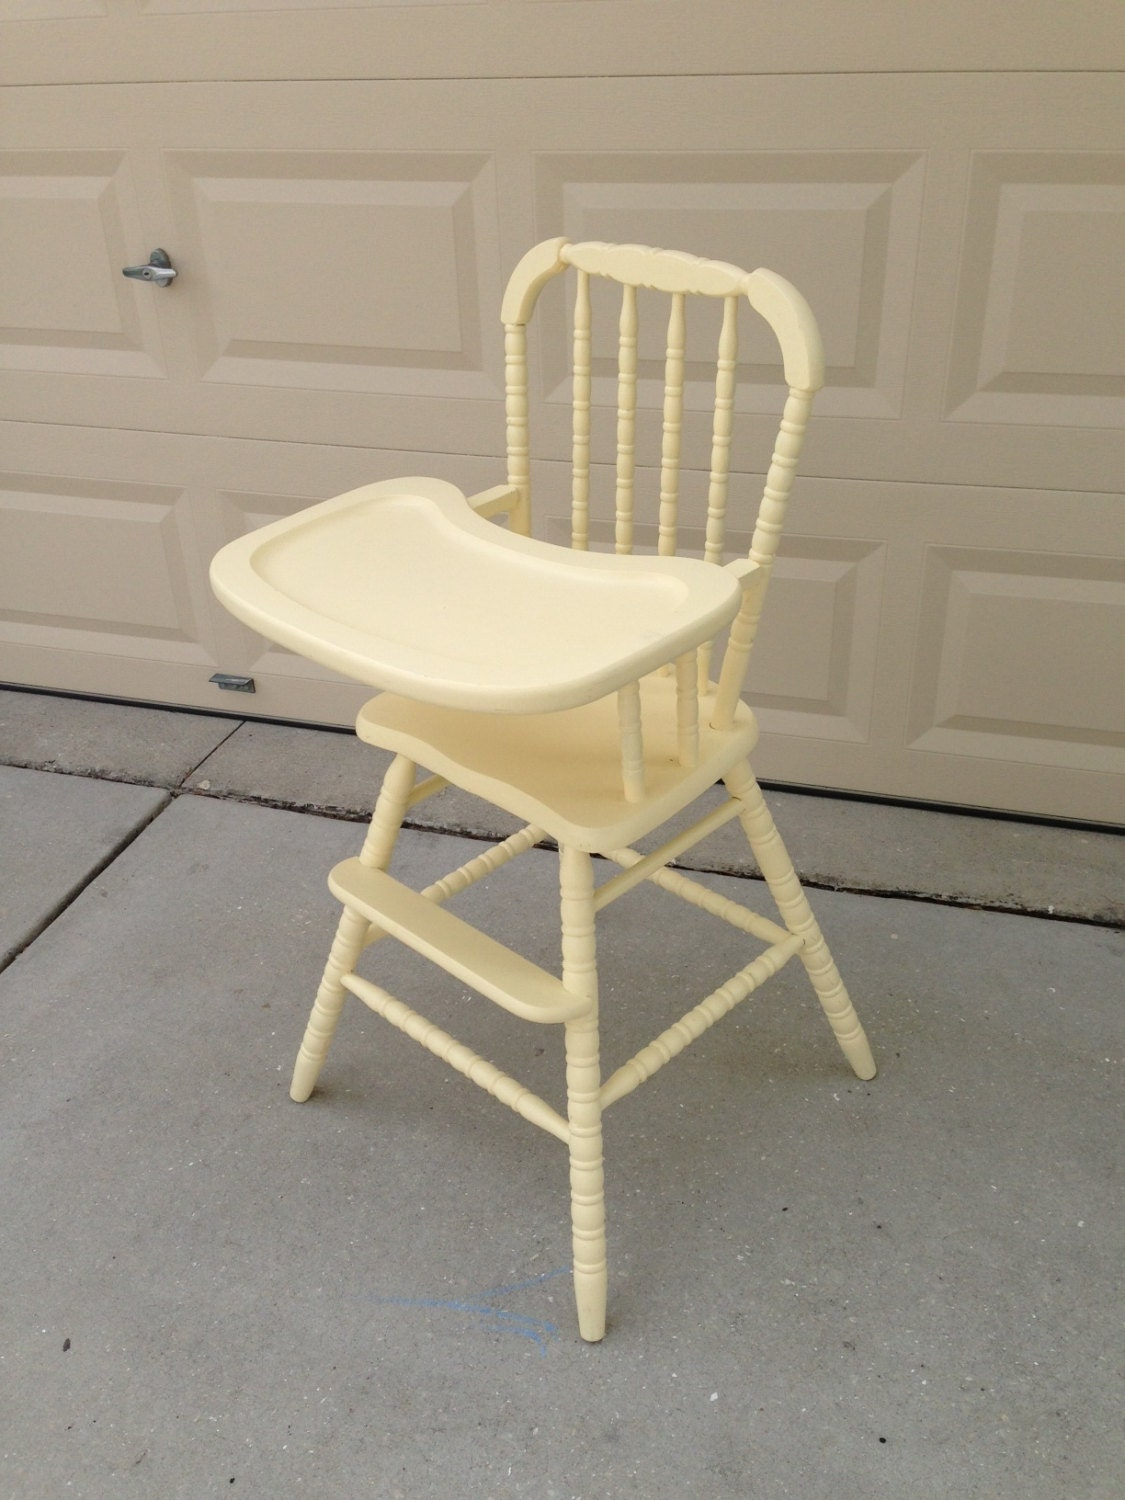 Items similar to Vintage Wooden High Chair on Etsy